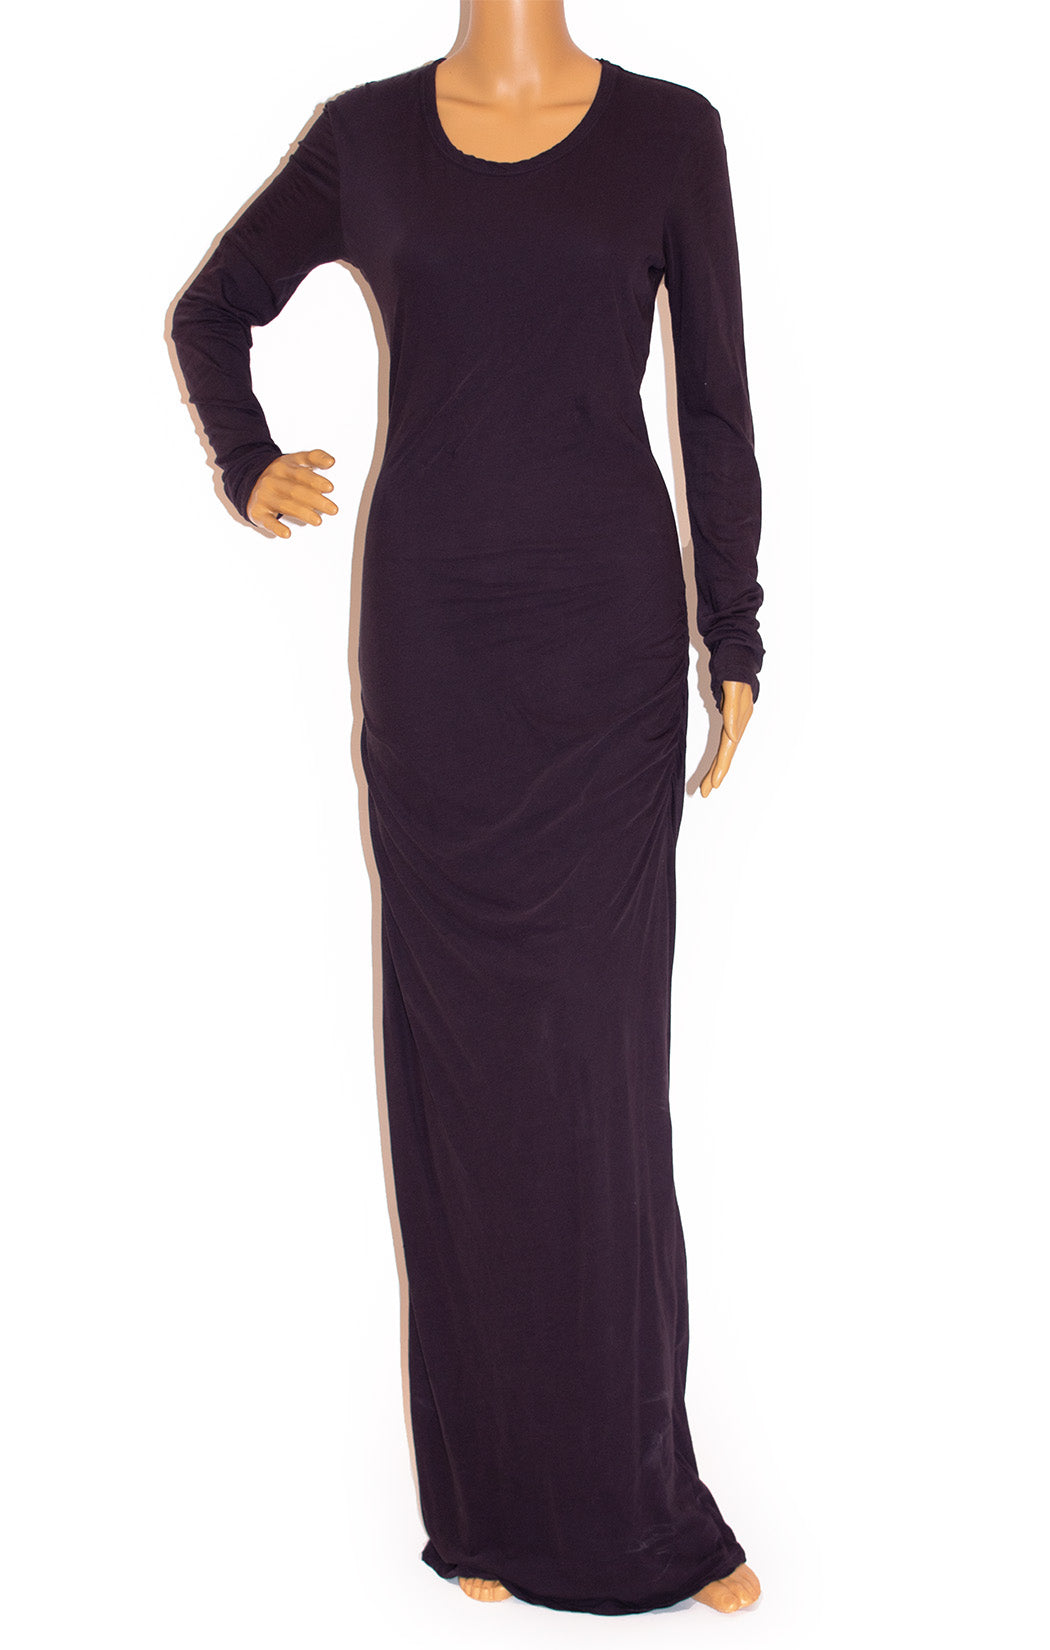 Front view of JAMES PERSE Long dress Size: Medium